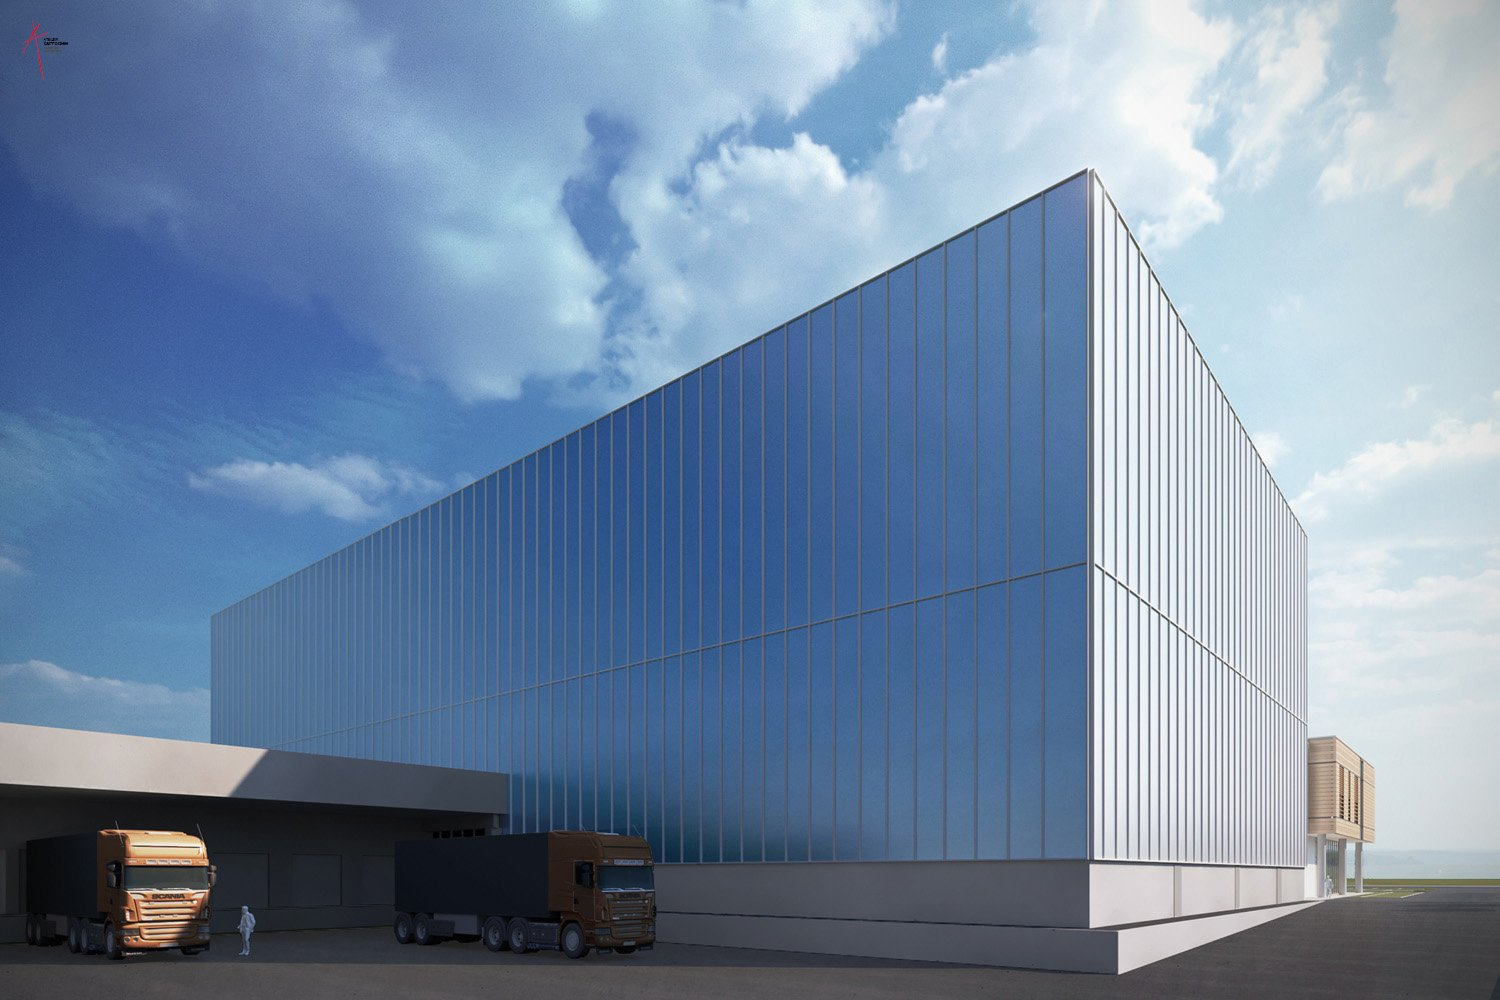 Automated warehouse_north facade Rendering by Jacopo Berlendis, courtesy of Atelier Cappochin